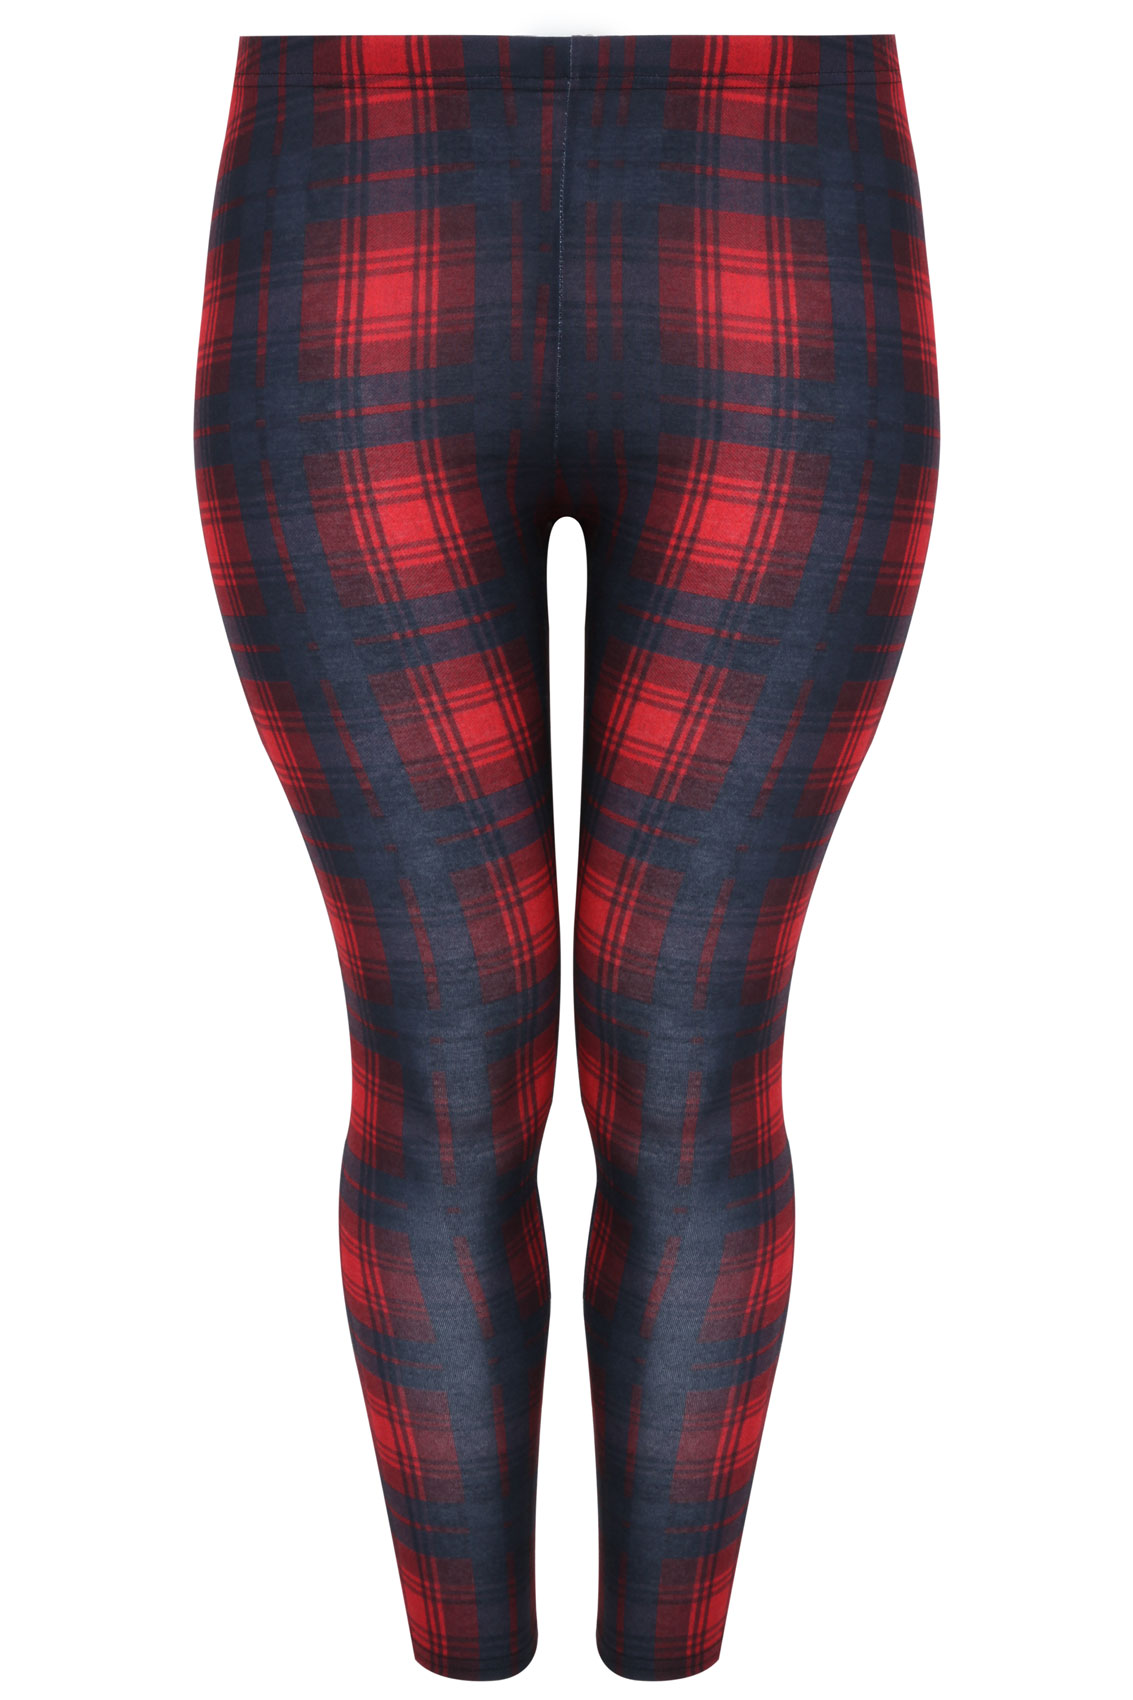 Available In Red High Rise DTY Fabric Full Stretch Skinny Leg Elastic Waistband Plaid Print 29